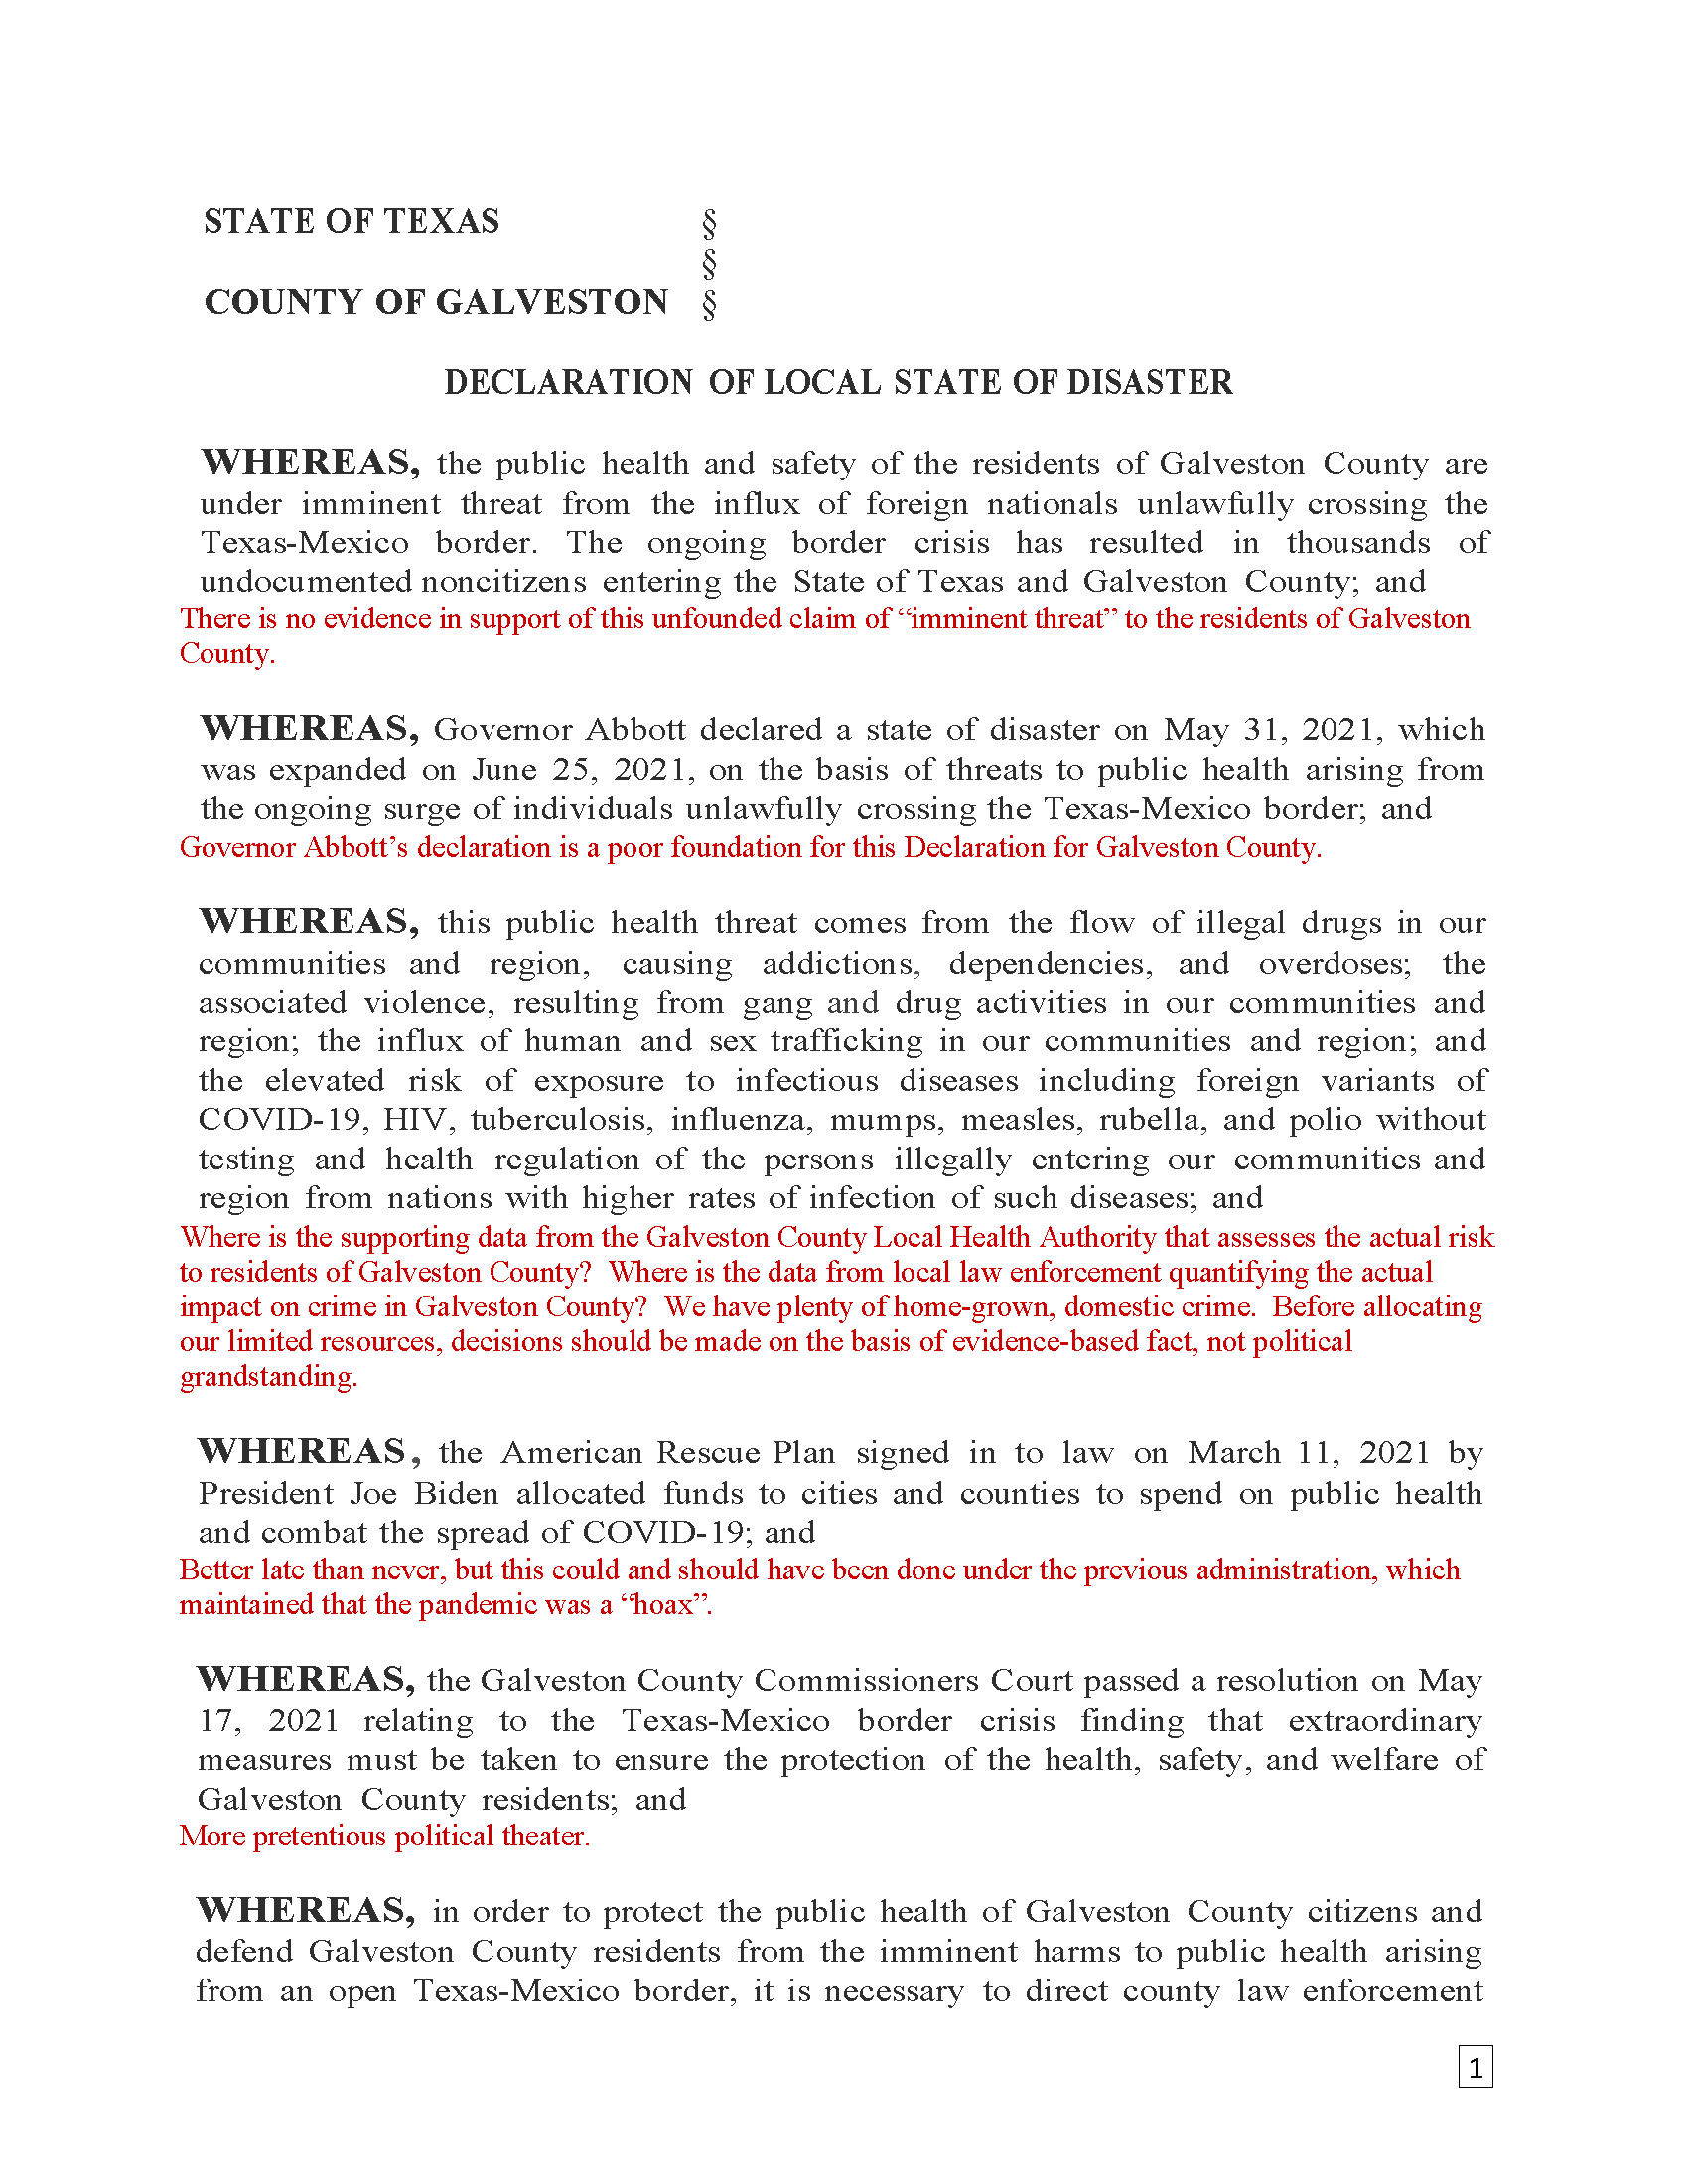 2021_06_29_Declaration_of_Local_State_of_Disaster_annotated_Page_1.png